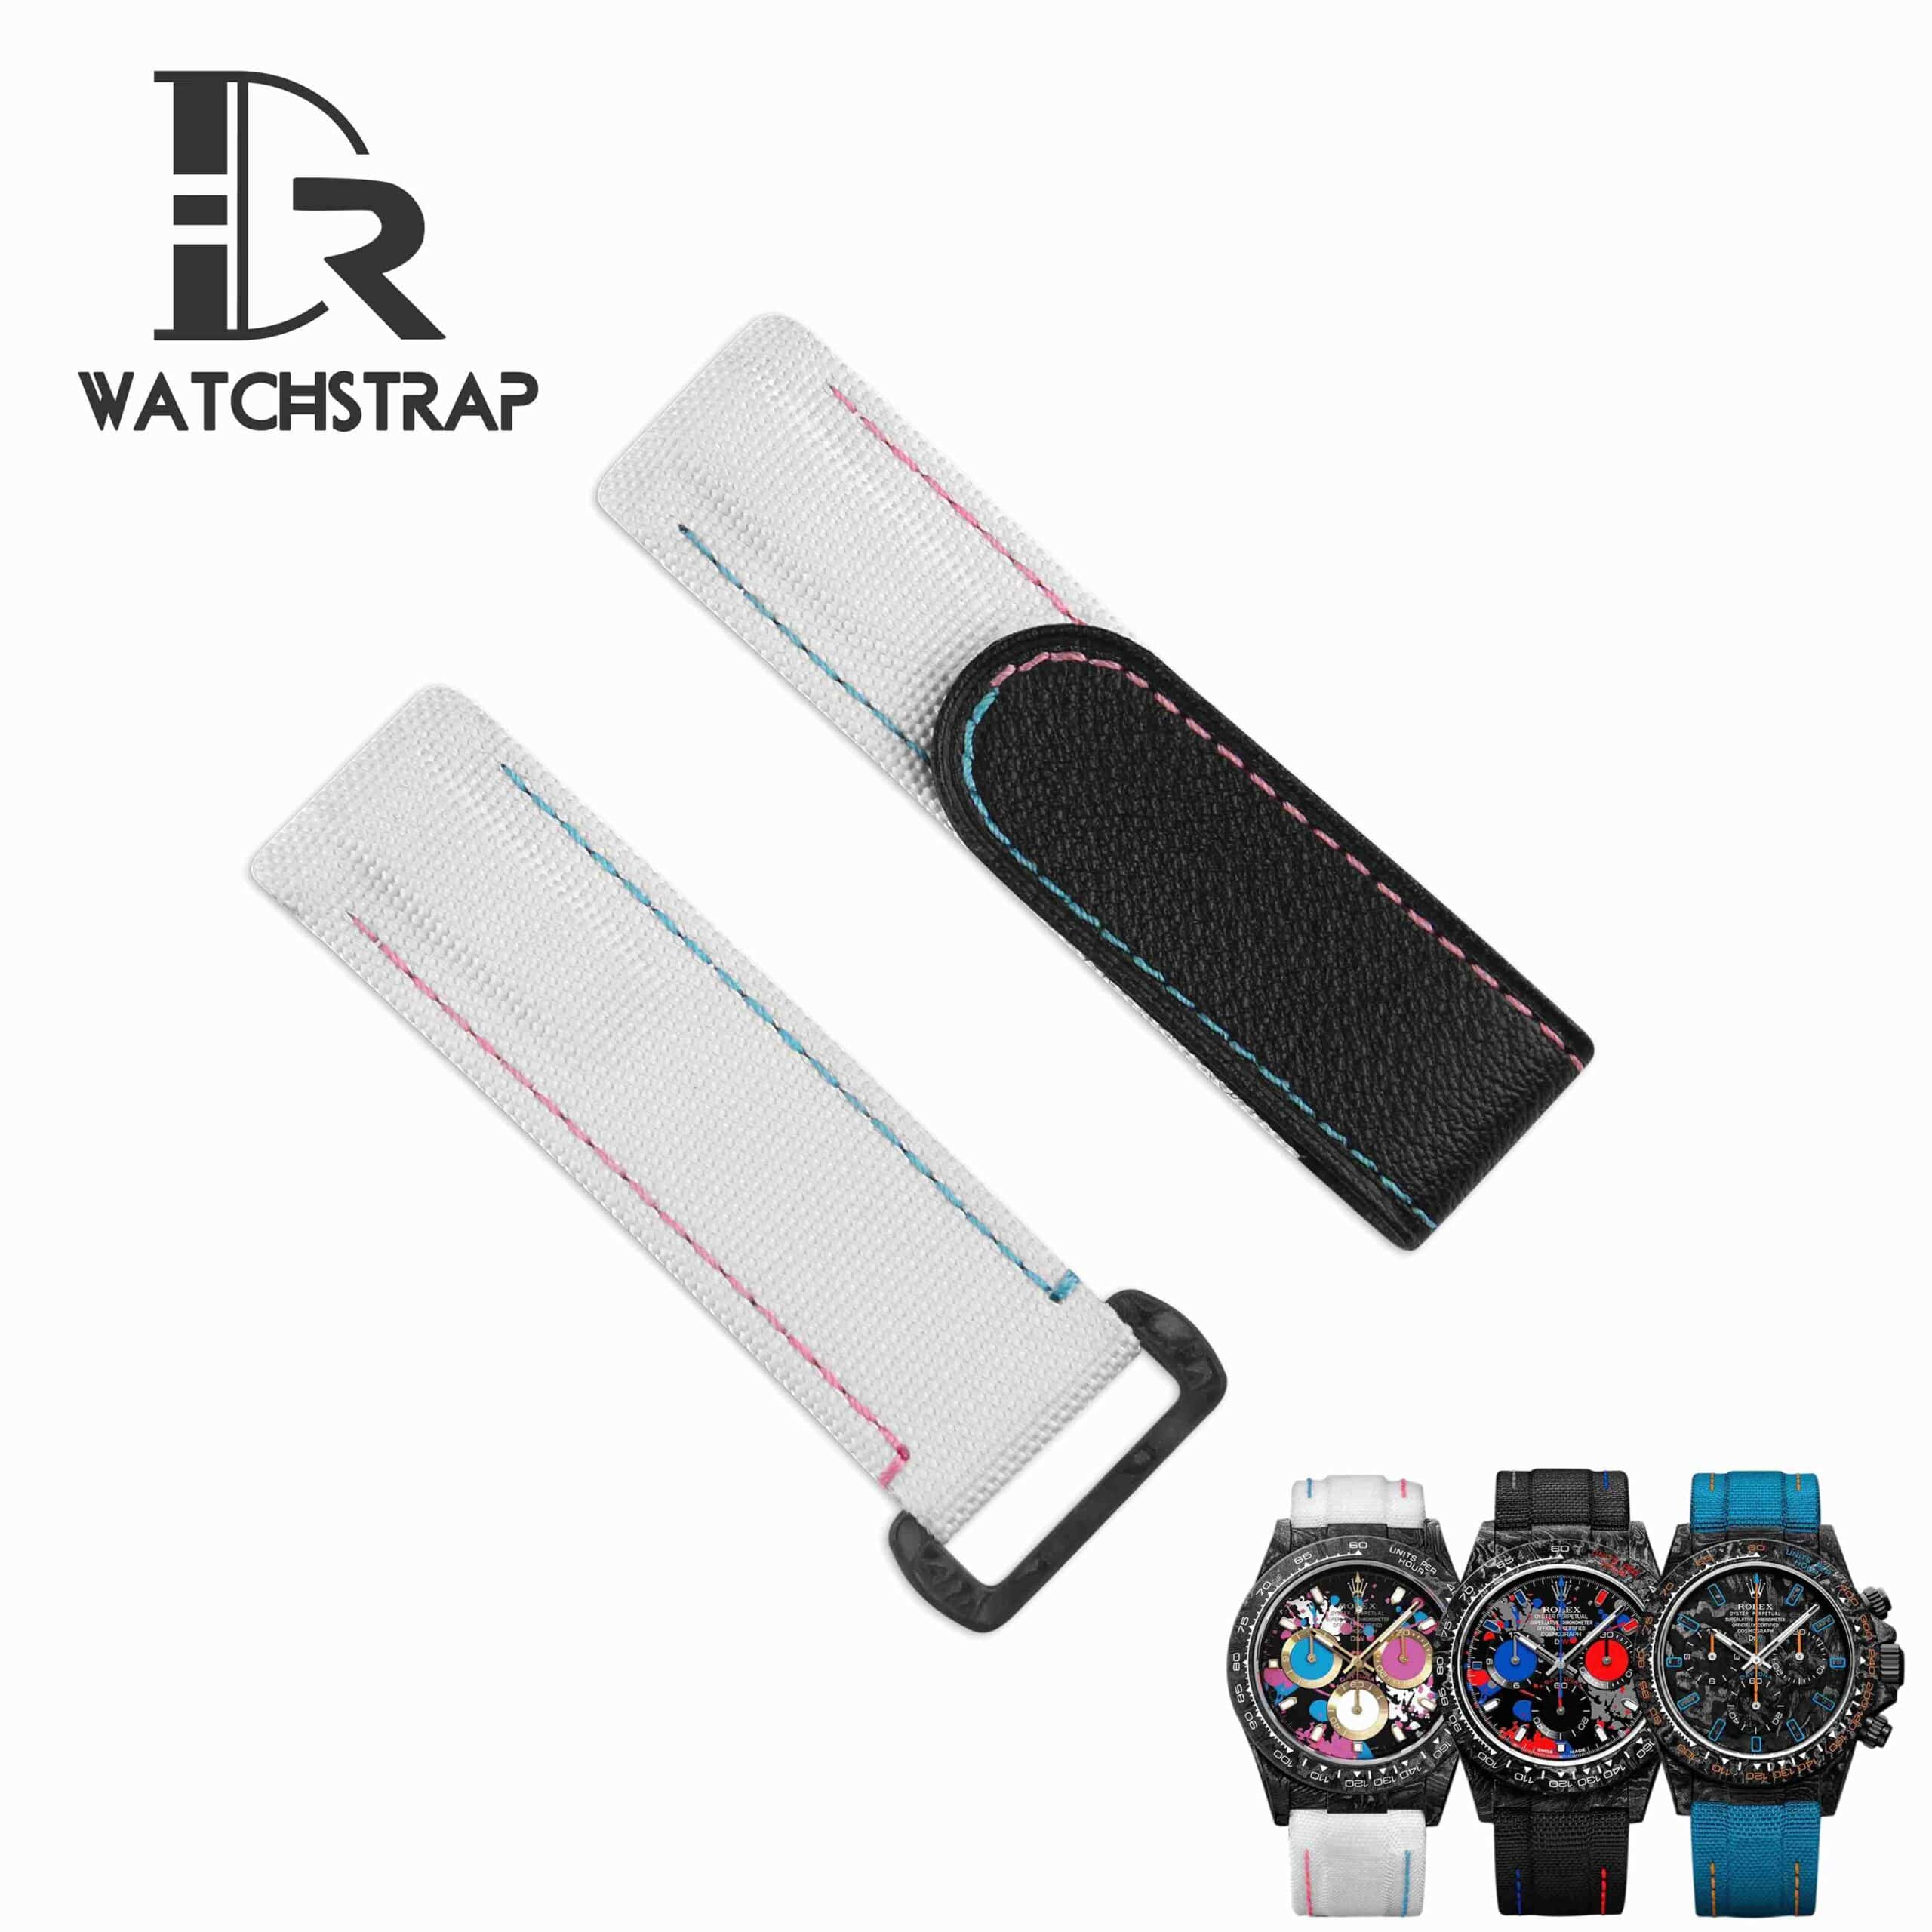 Rolex velcro fabric watch band diw white black blue red orange replacement strap